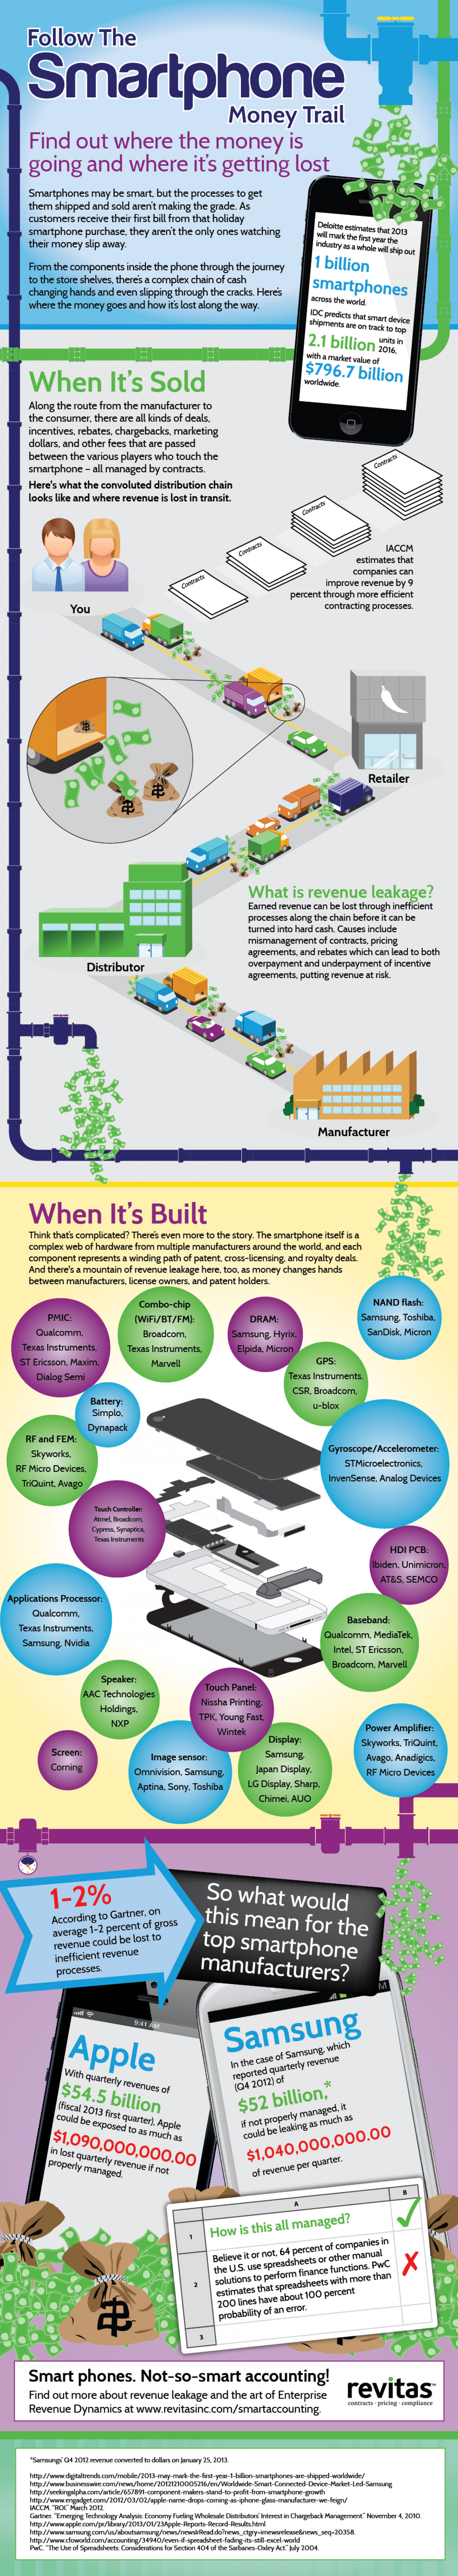 Why Apple and Samsung could be losing billions of dollars a year Infographic